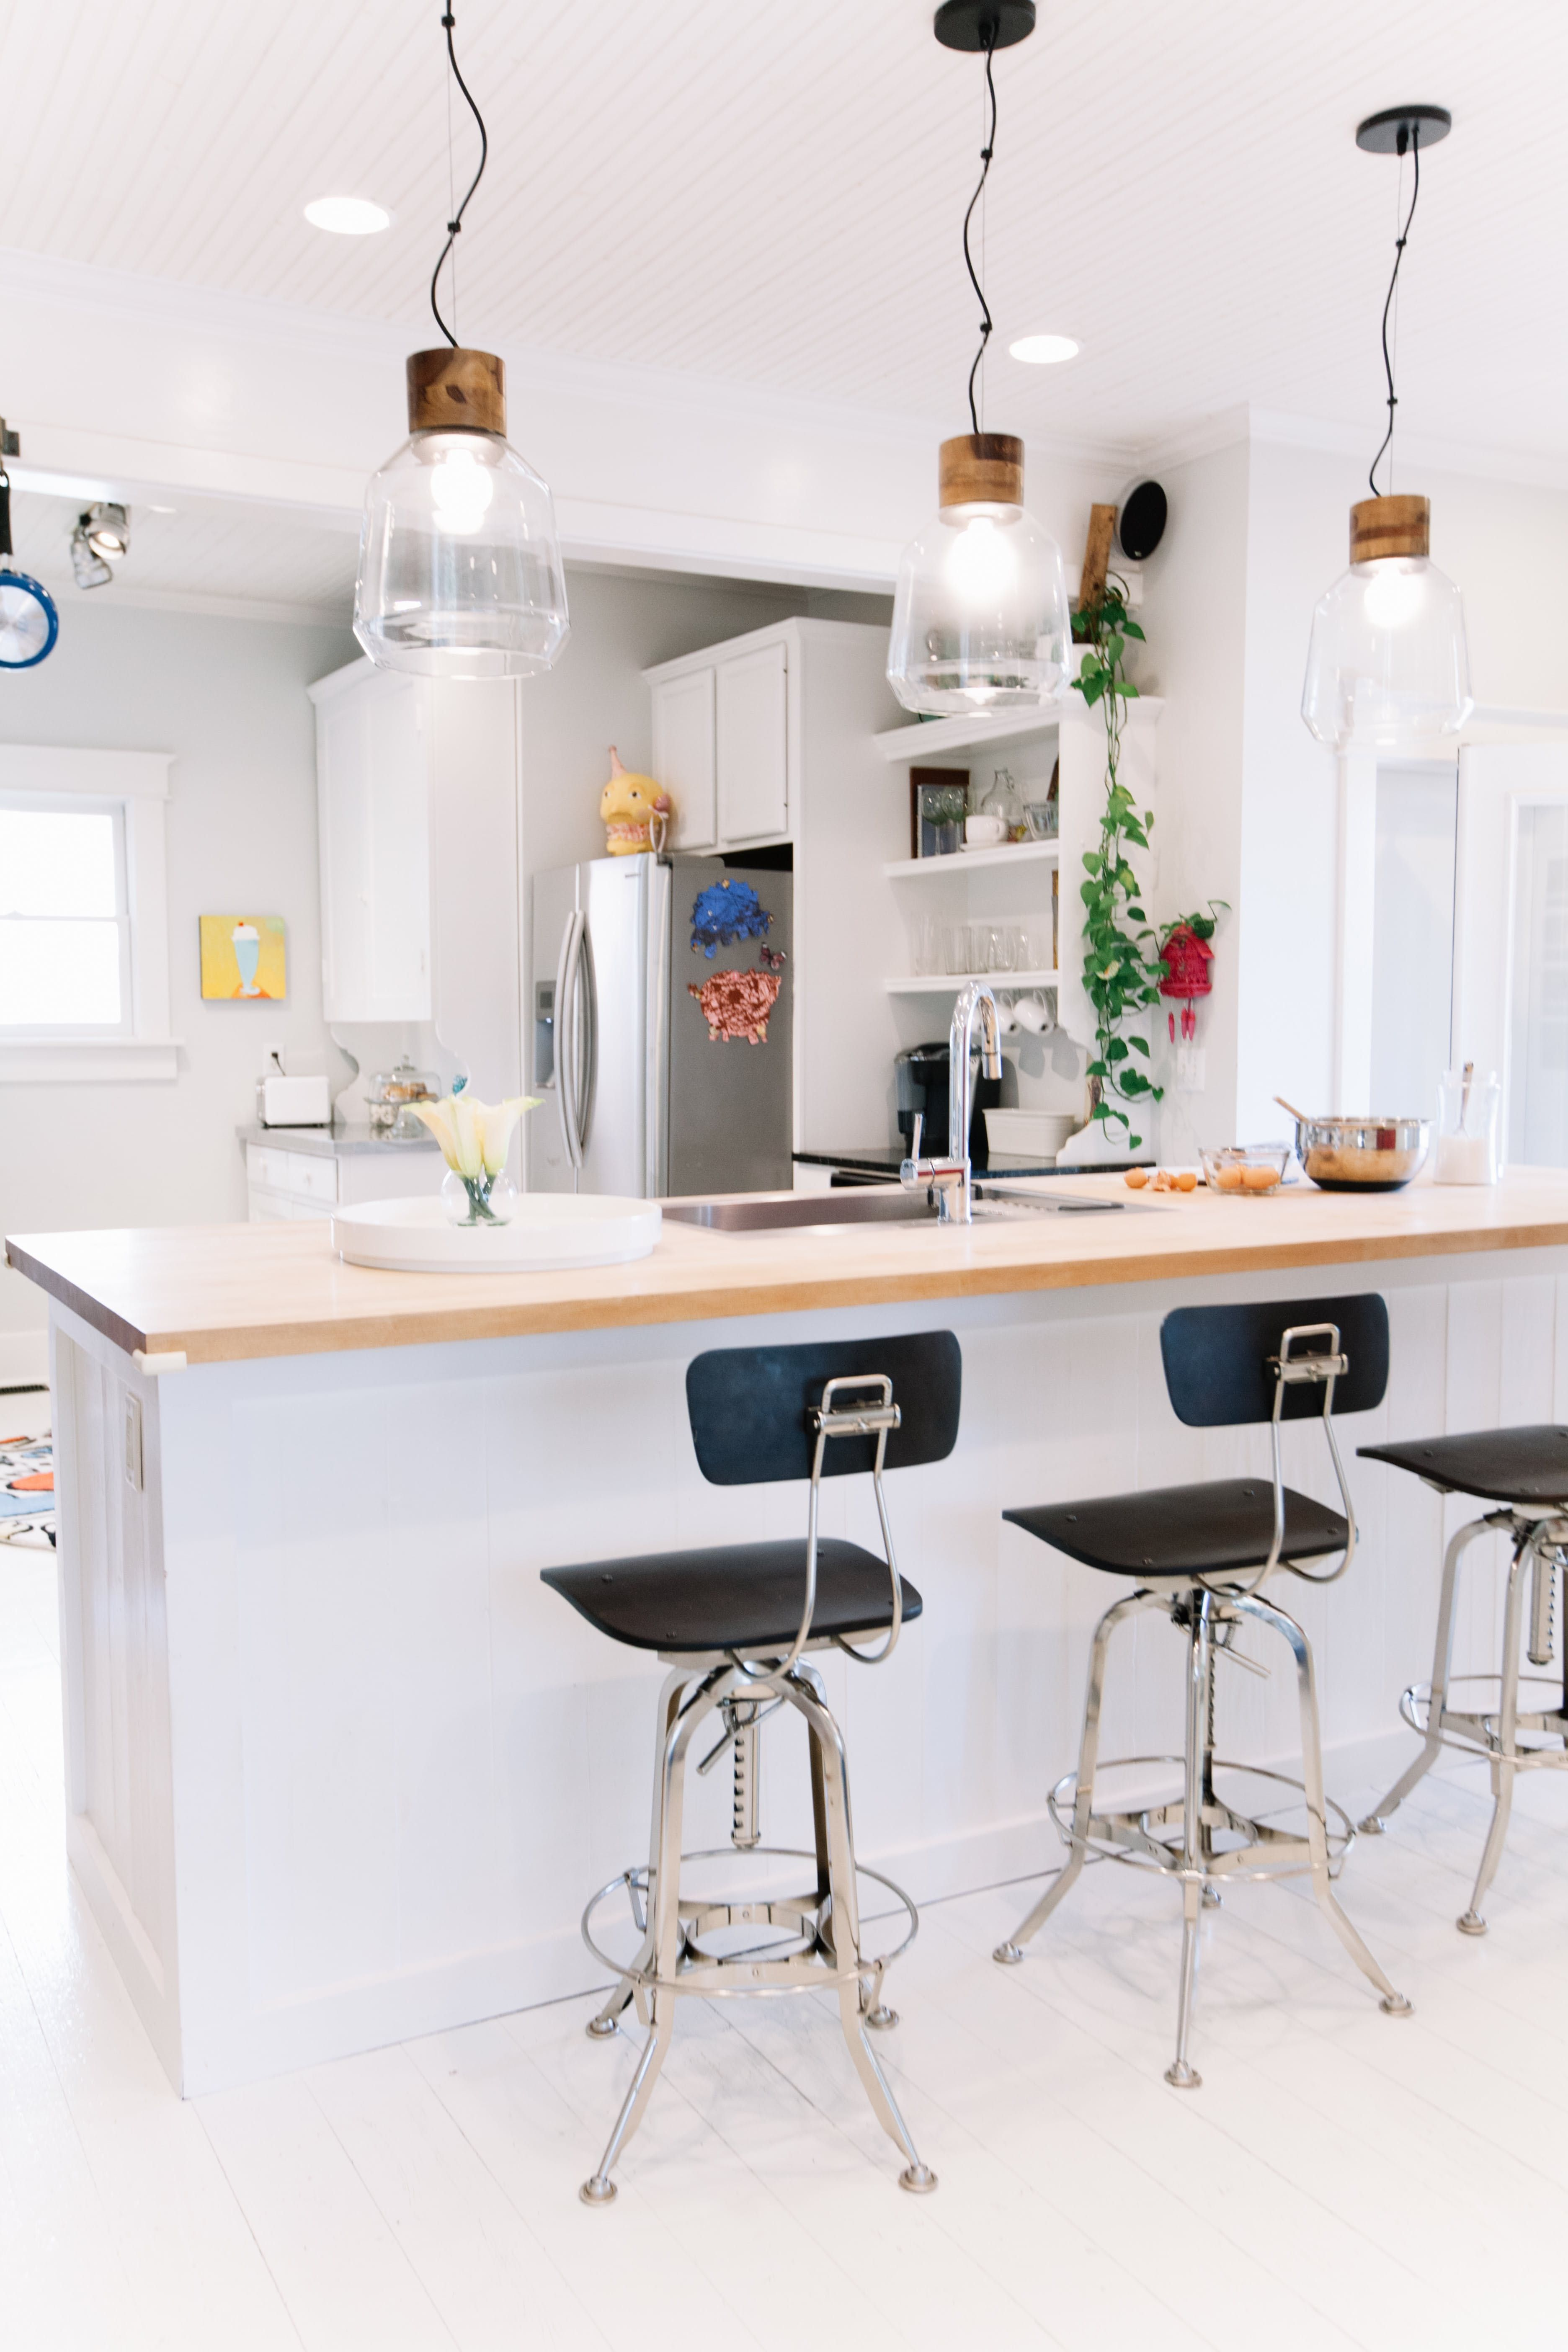 Gallery of Kitchen Island Breakfast Bar Ideas & Inspiration | La ...